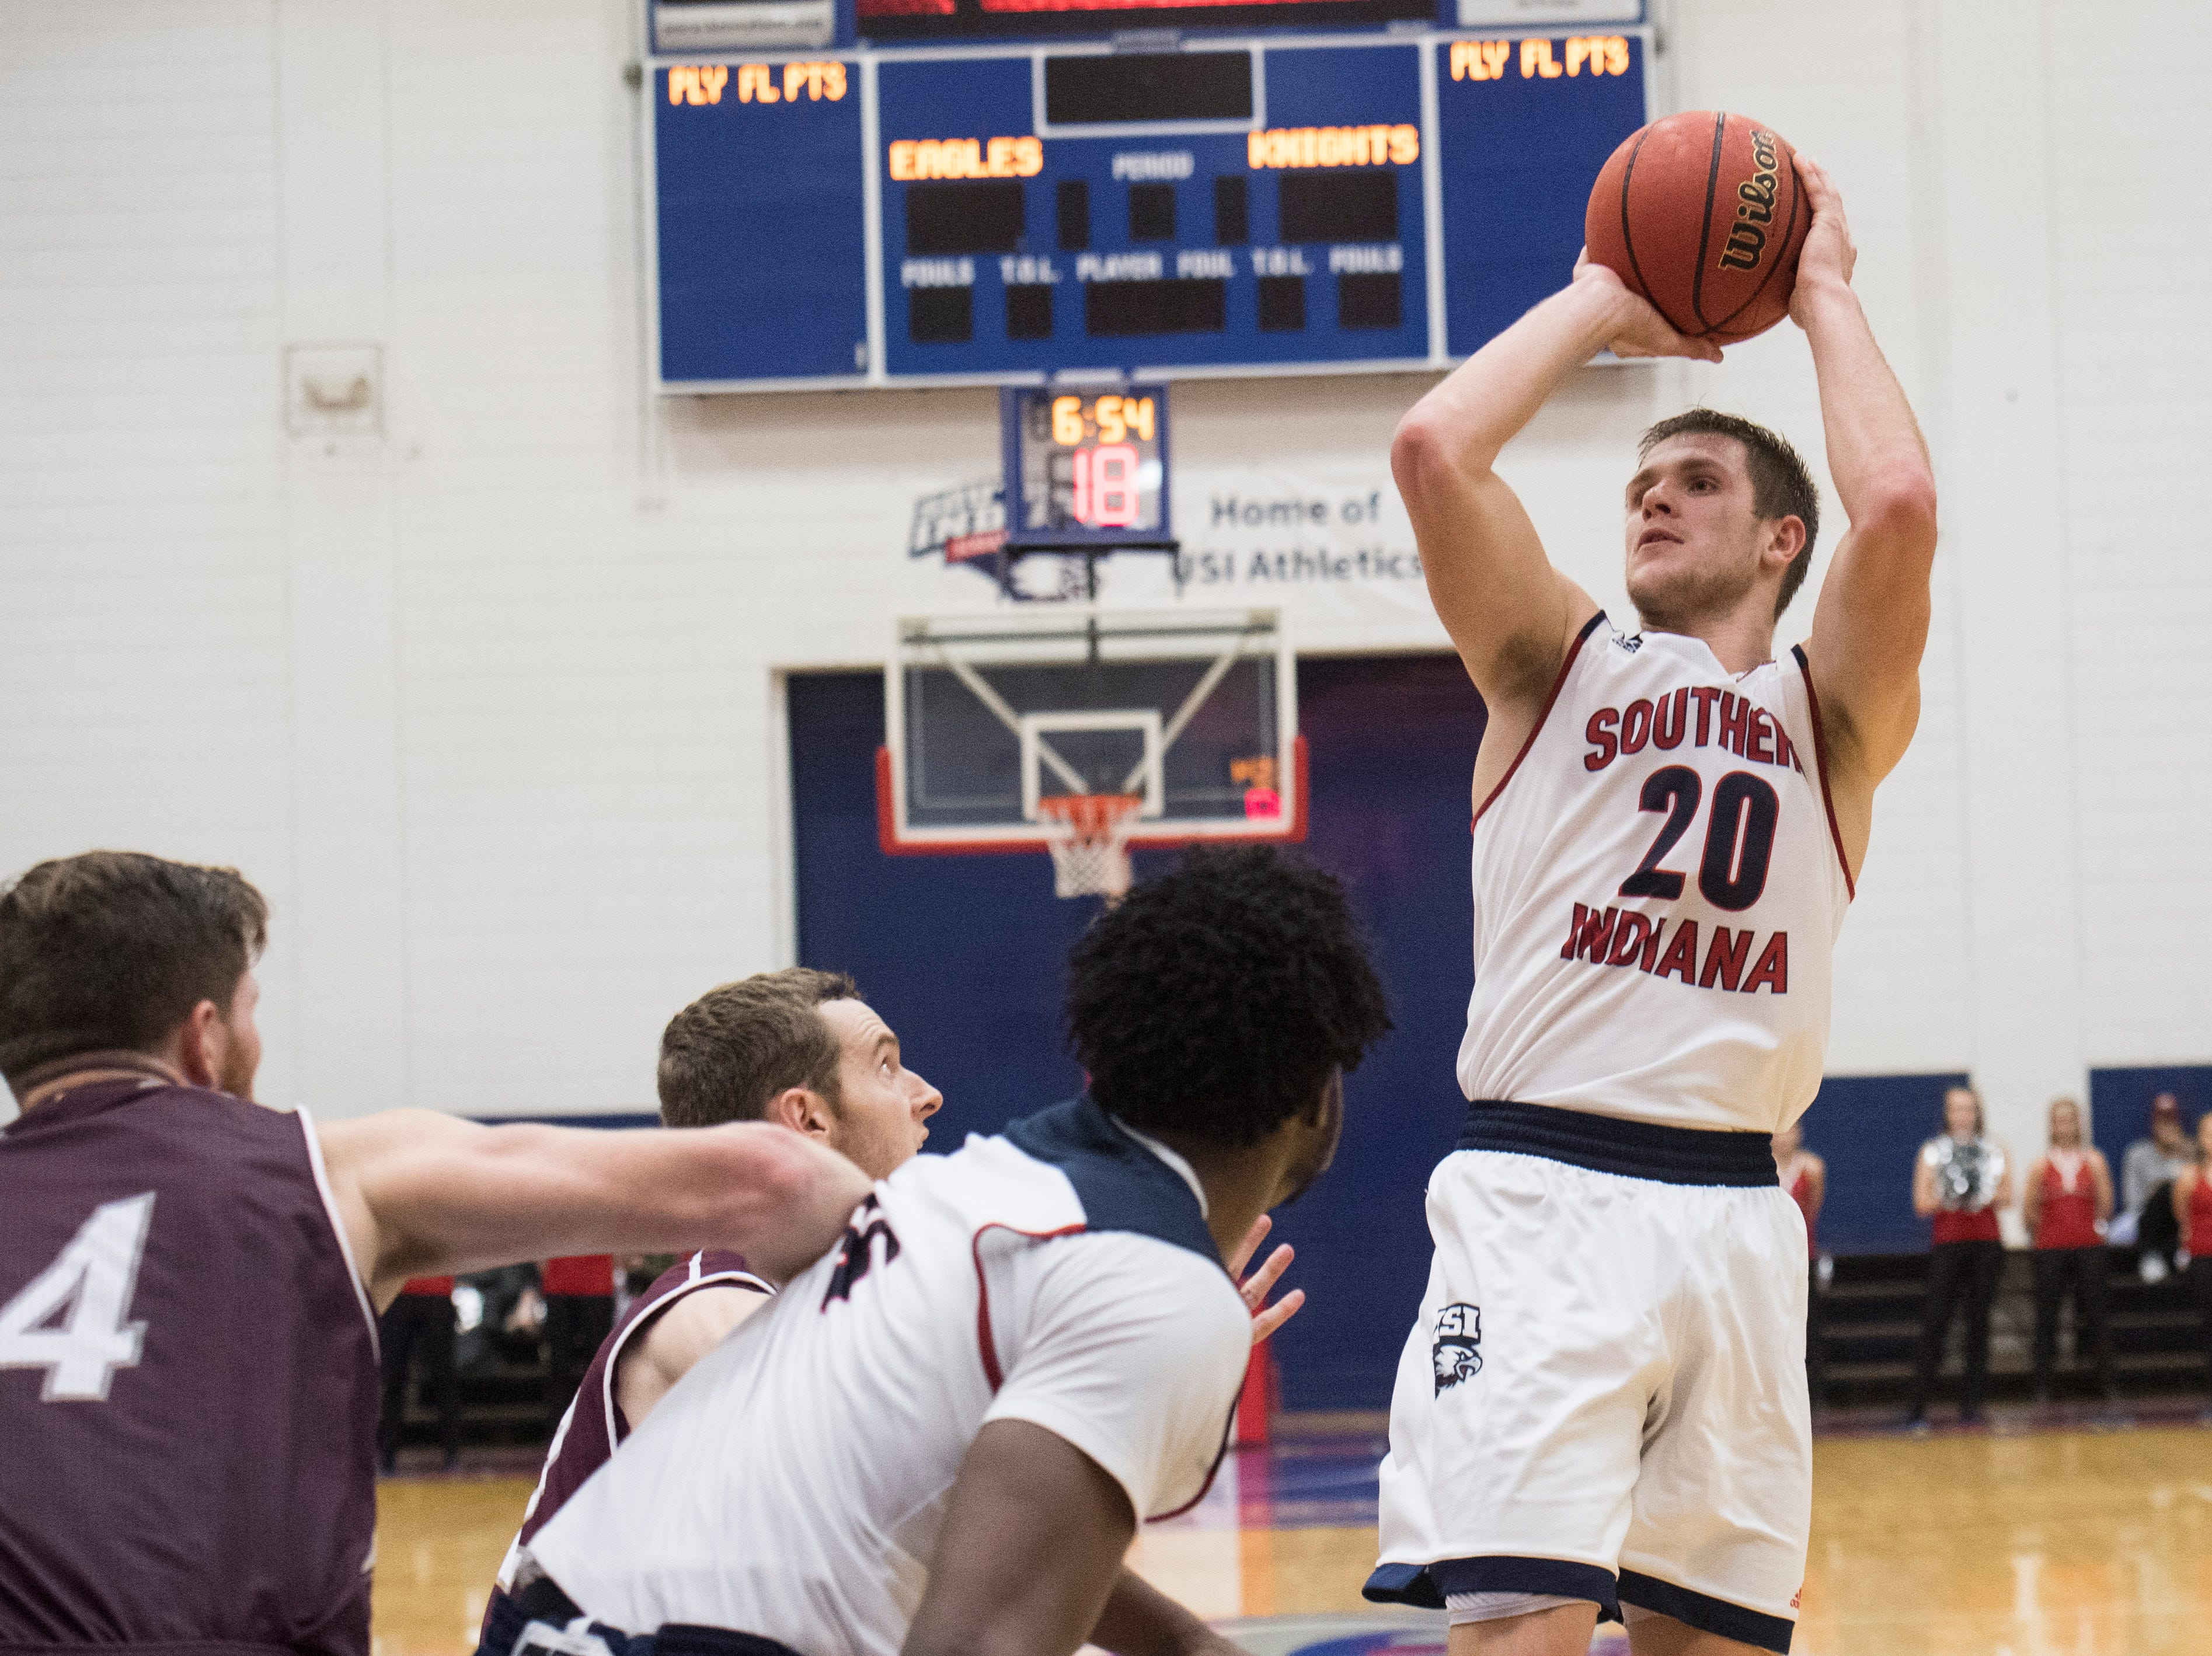 USI's Alex Stein (20) fires a jump shot during the USI vs Bellarmine game at the PAC Saturday, Dec. 1, 2018.